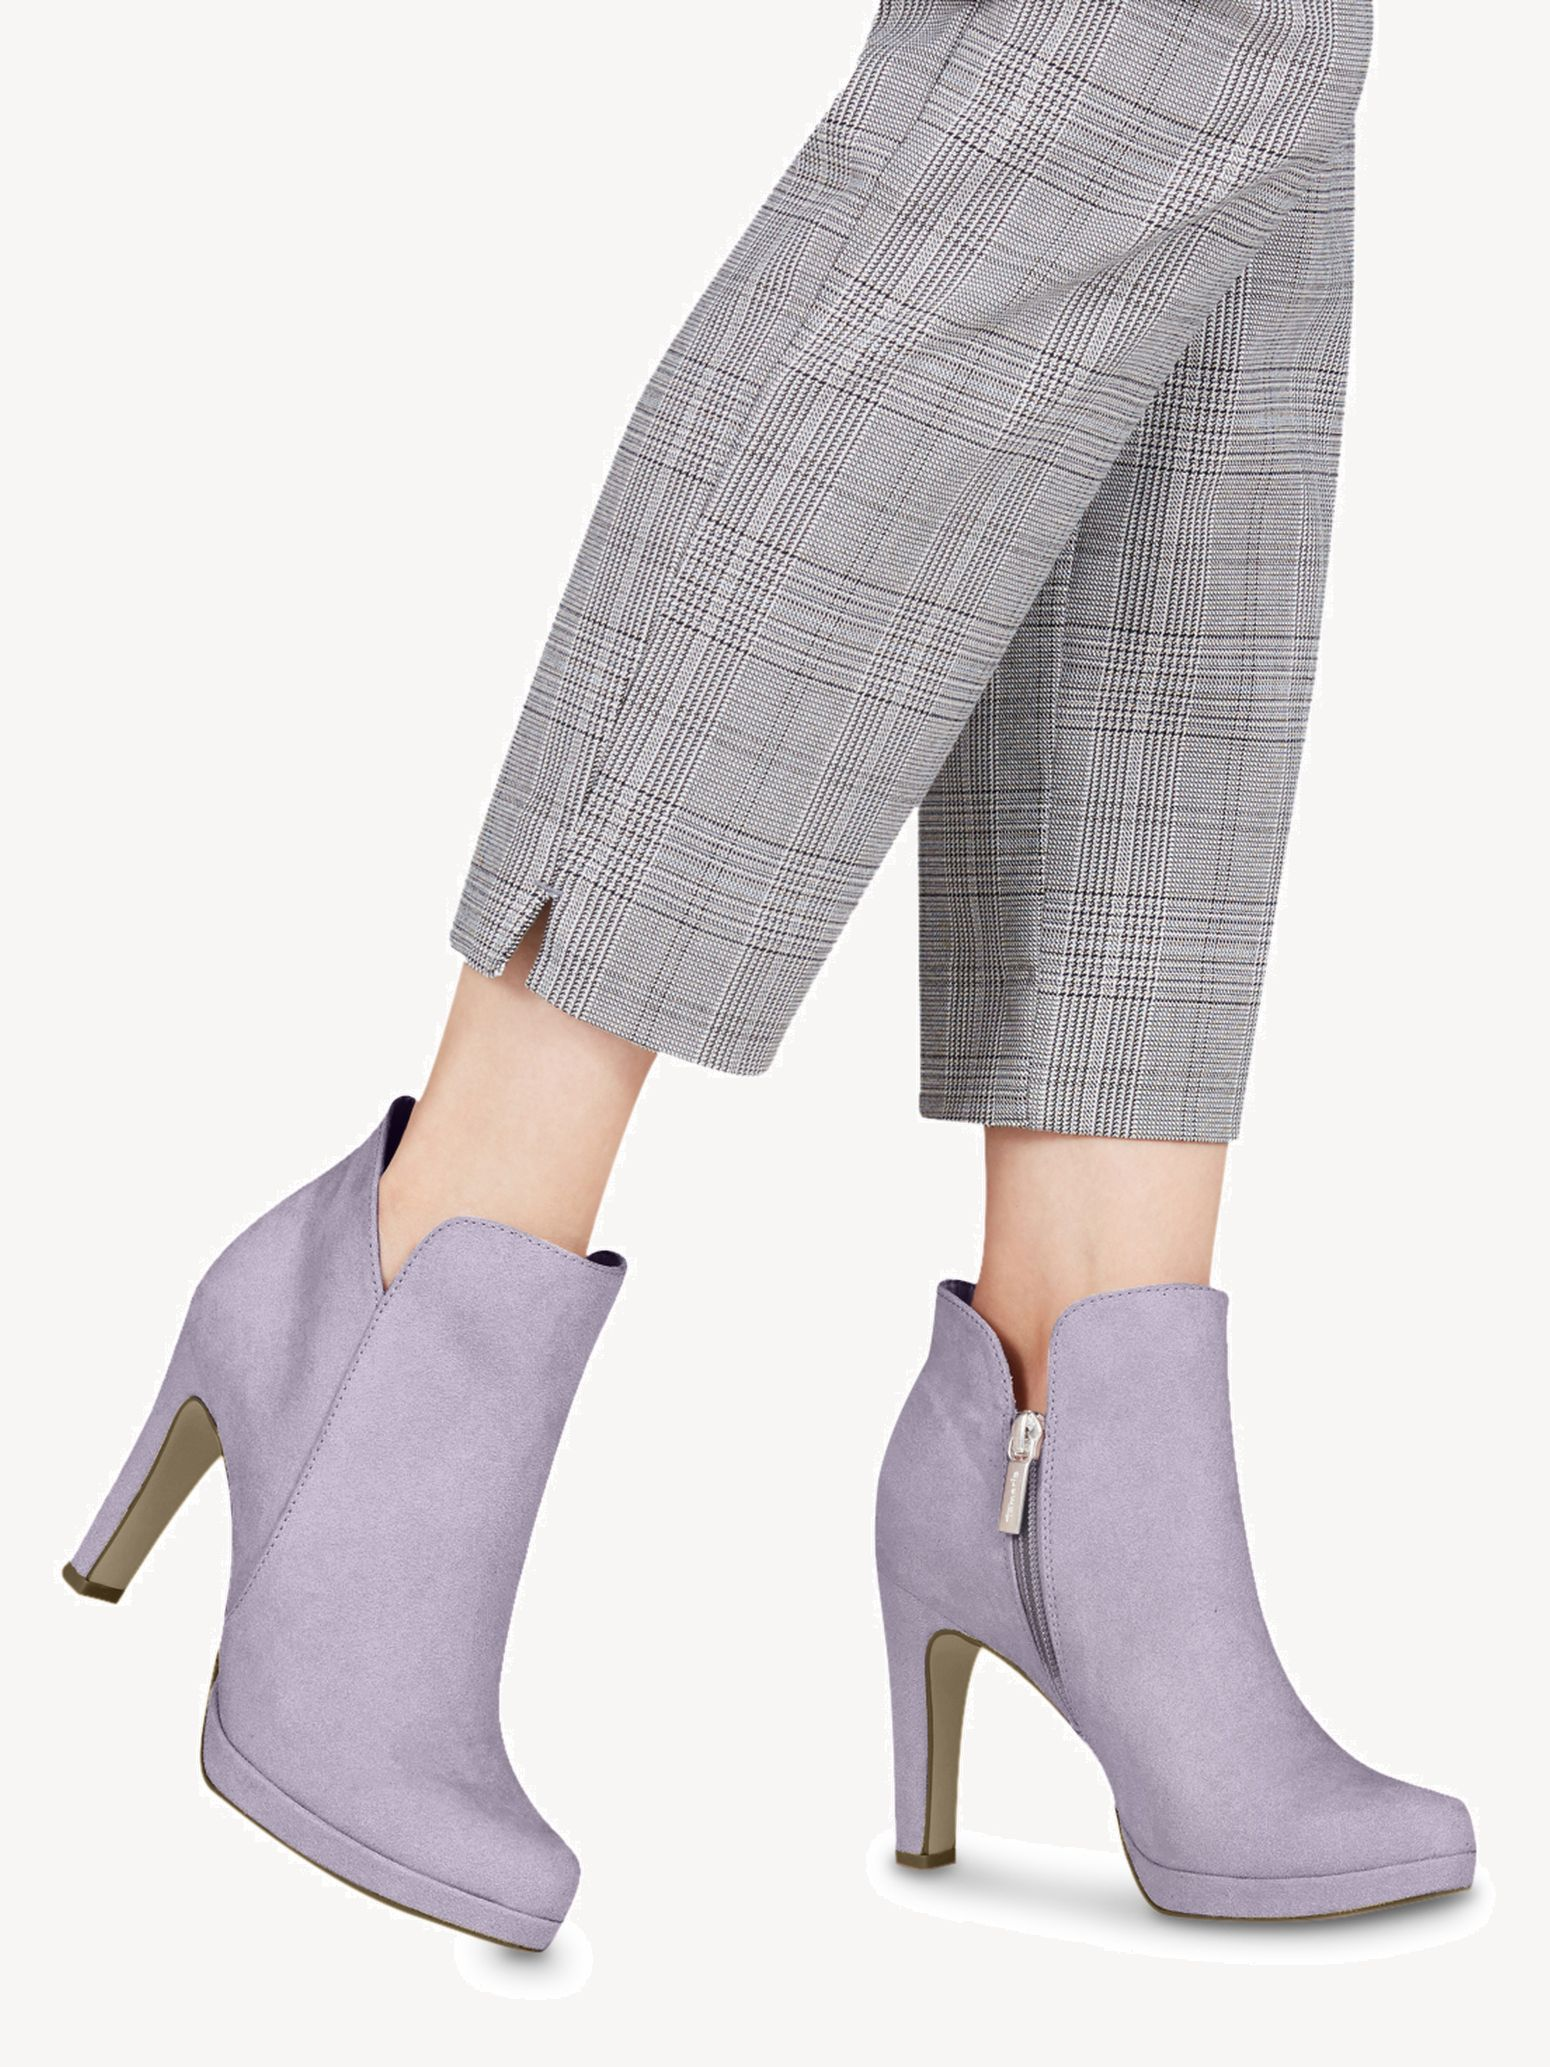 Details about Tamaris Ladies Ankle Boots Shoes with Funnel Heel 25316 Boots Purple Violet